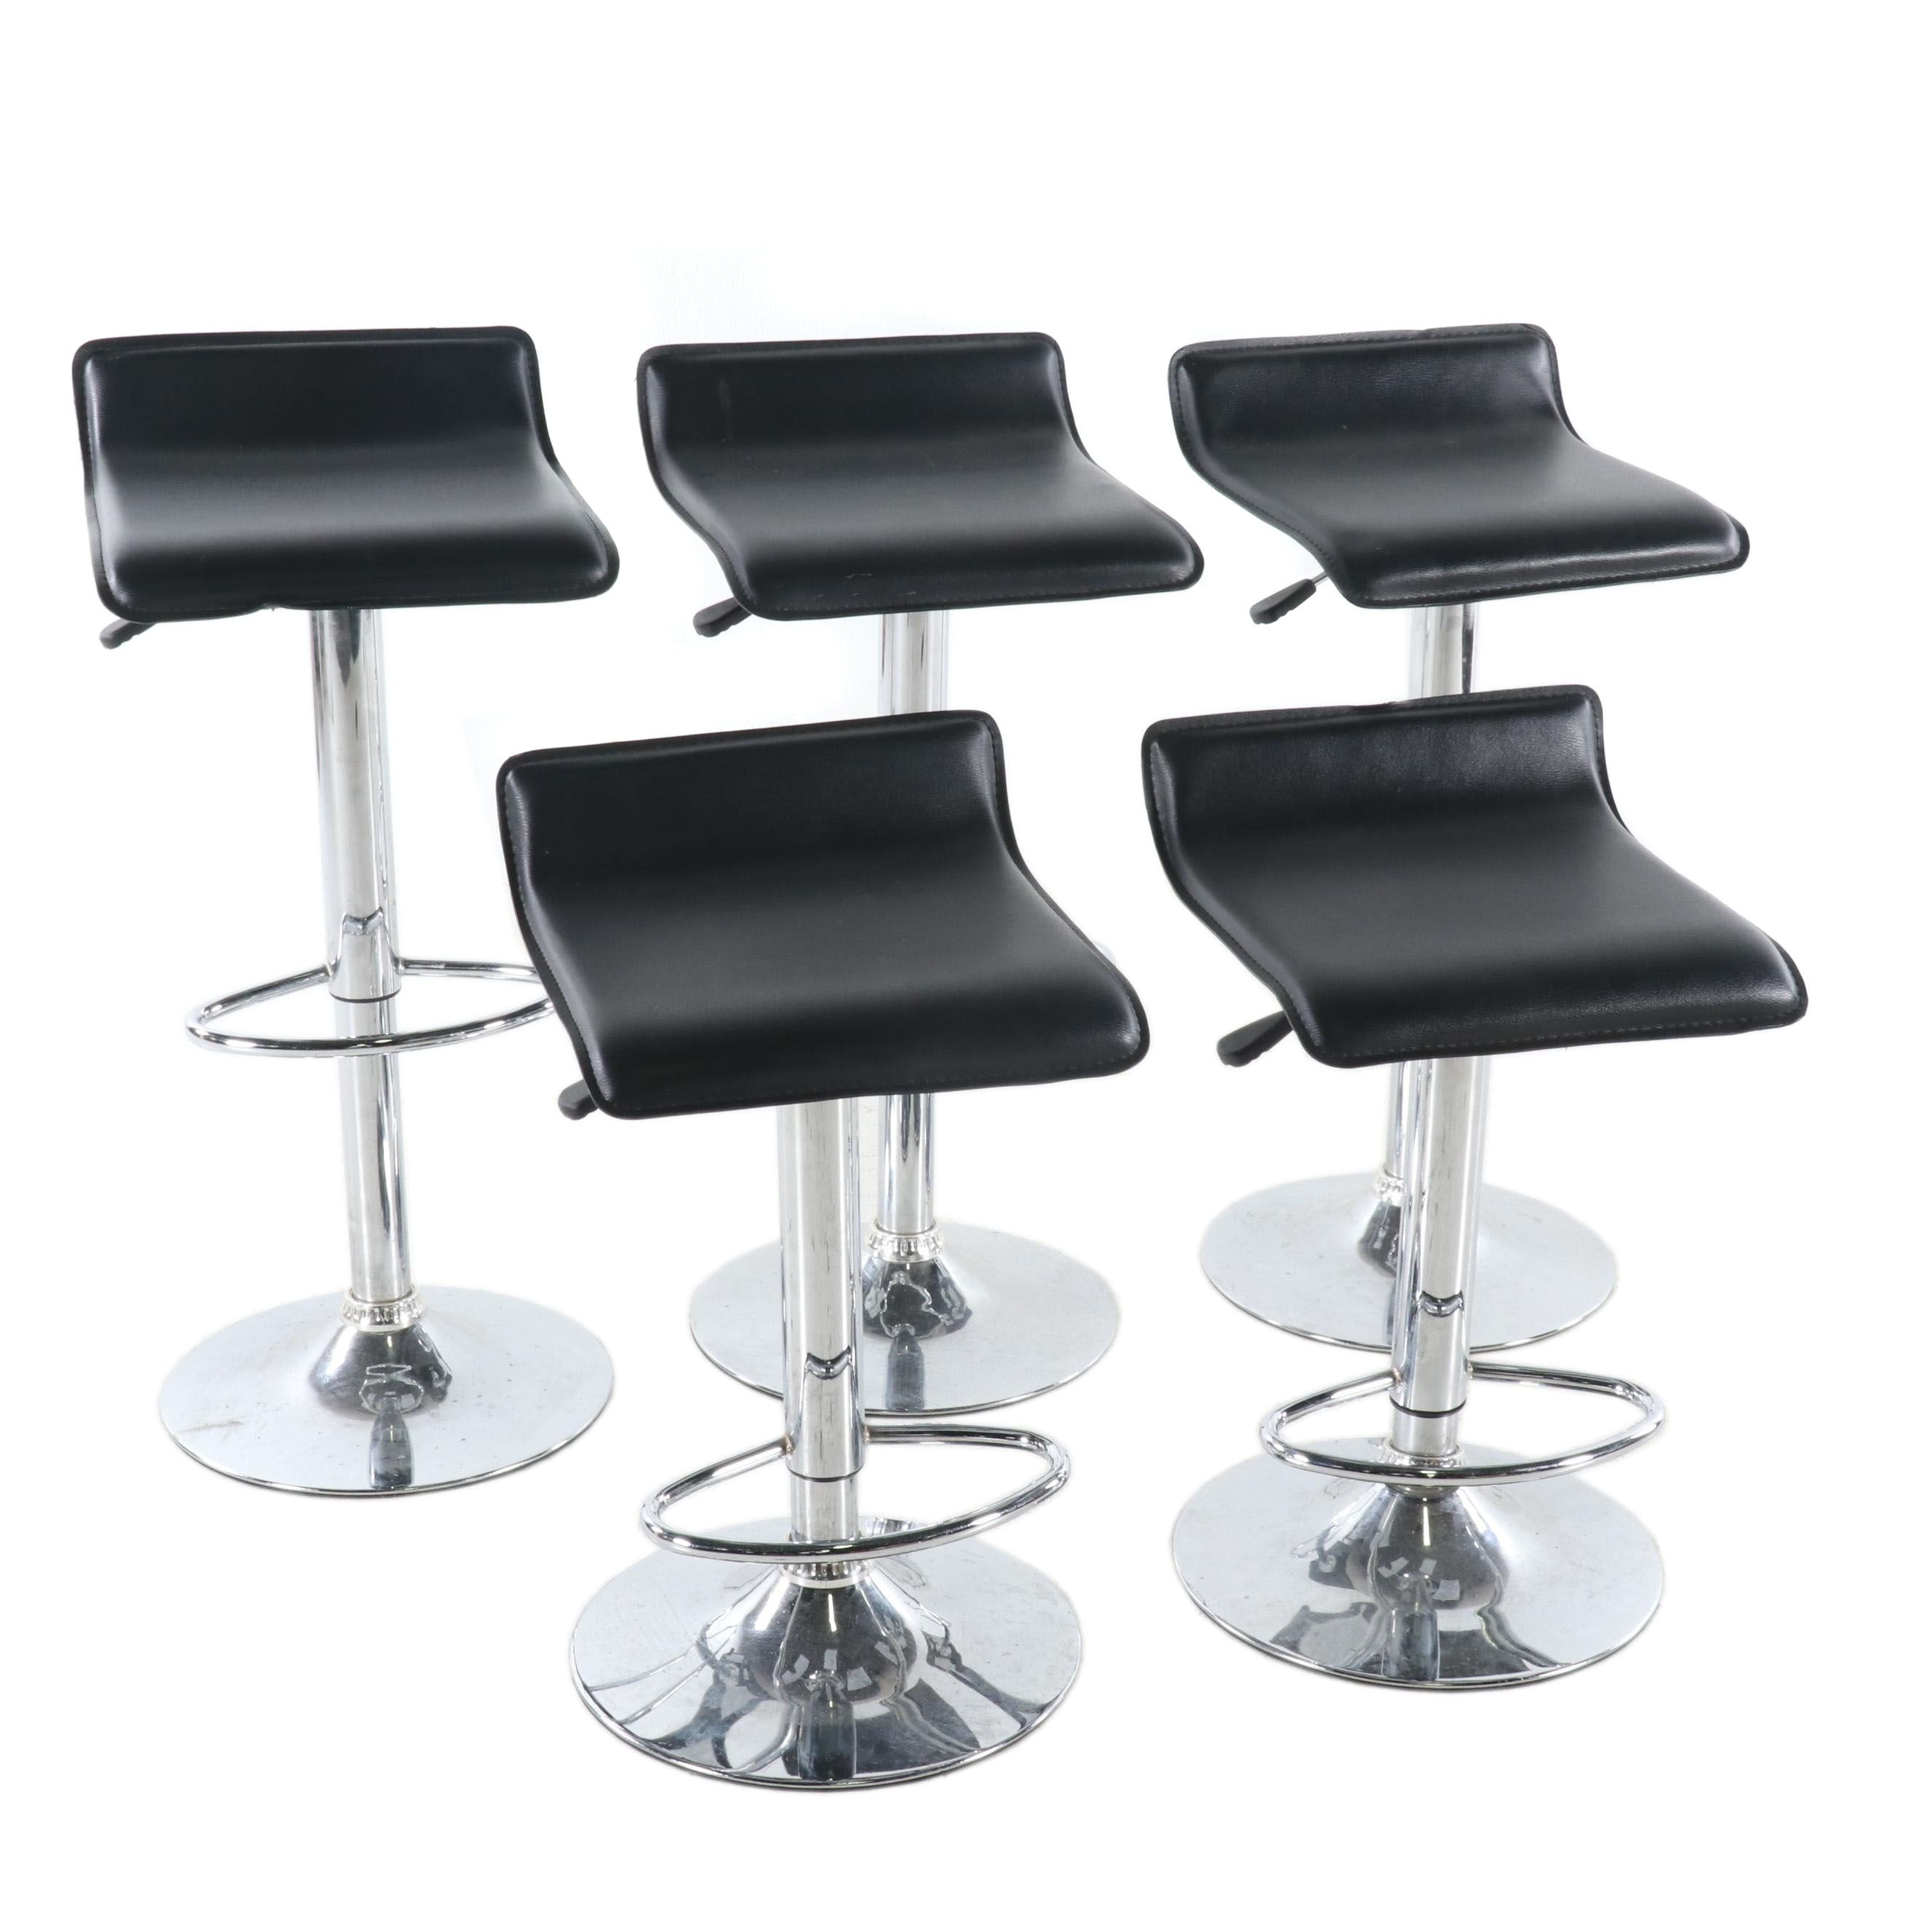 Modernist Style Swivel Barstools with Black Leather Upholstery